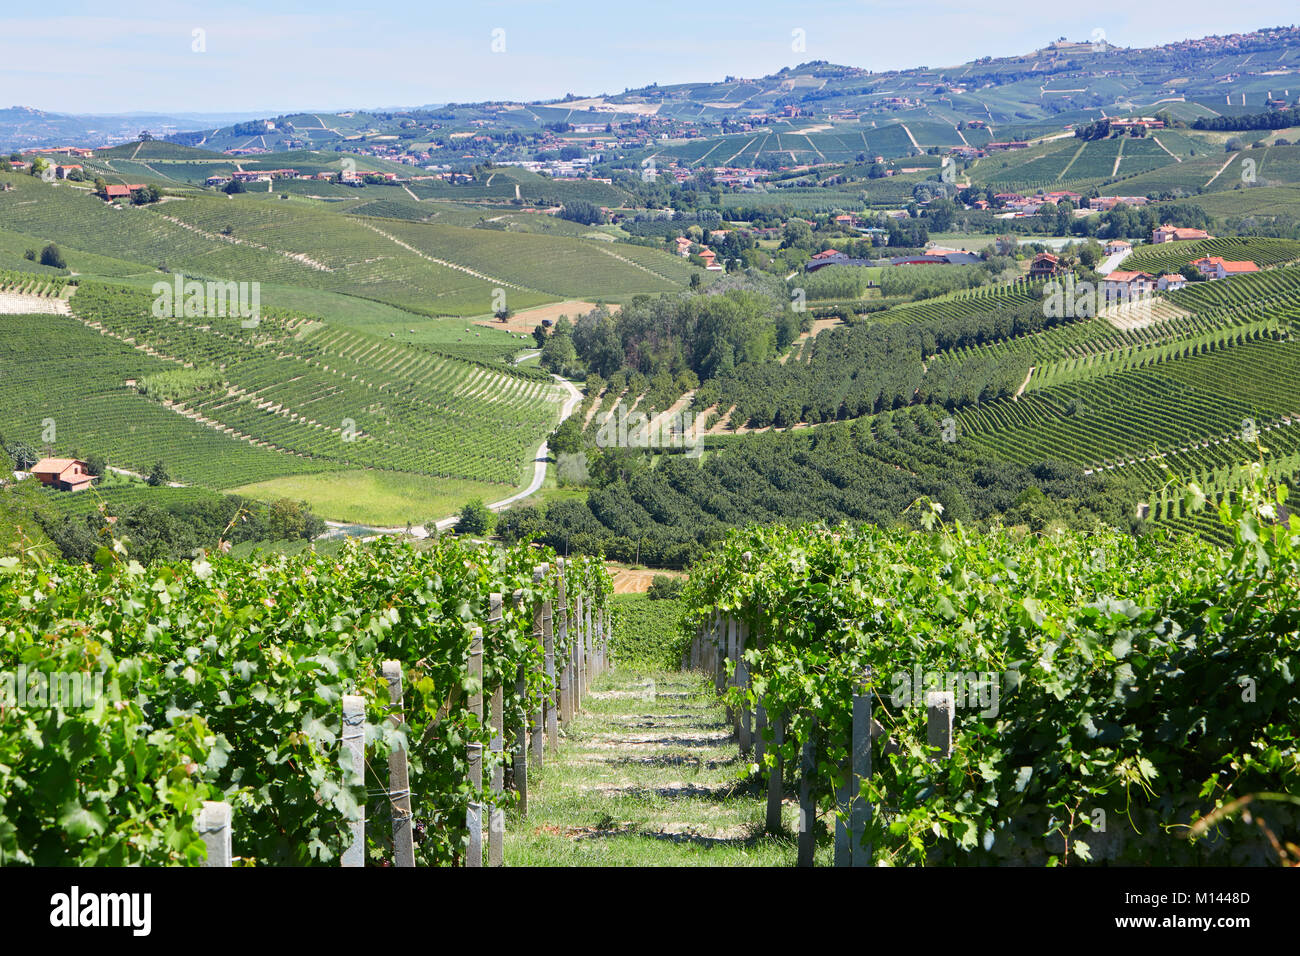 Green countryside with vineyards and trees in Piedmont, Italy - Stock Image